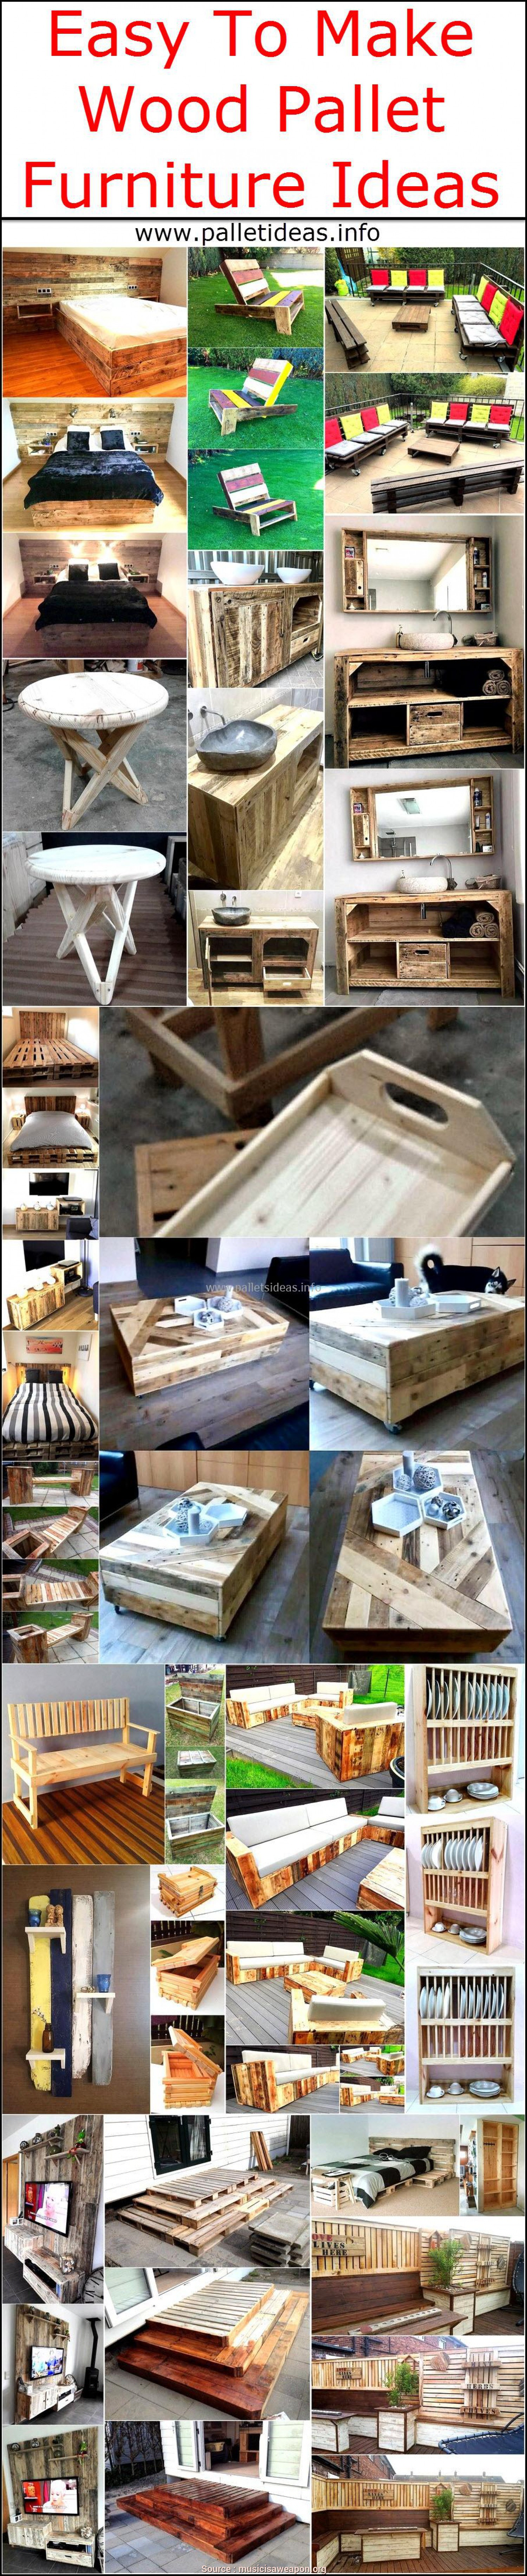 Pallet Epal Leroy Merlin, Amabile Amazing Pallet Furniture Ideas Easy Gallery Simple Design Home, Bancali Epal Leroy Merlin E Easy